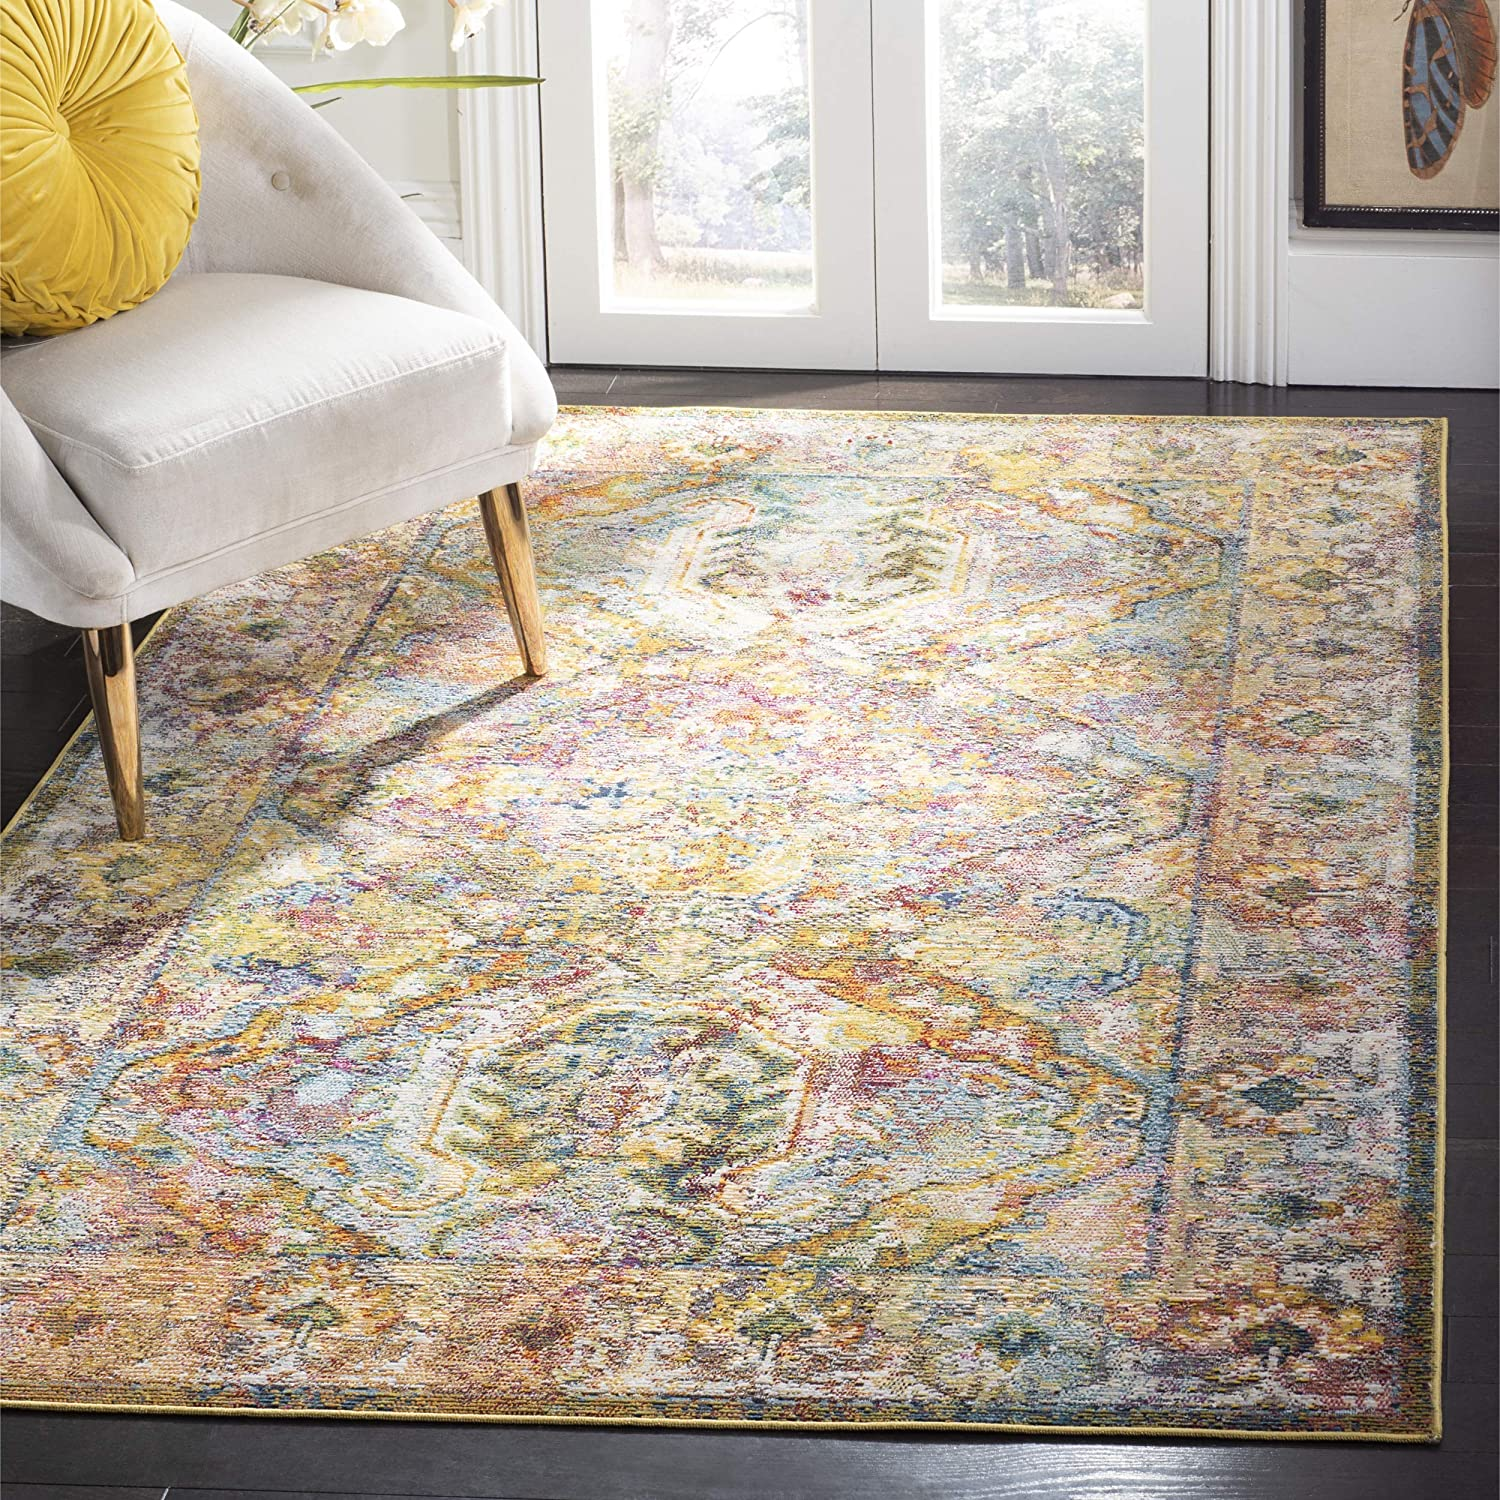 Safavieh Crystal Collection CRS516A Light Blue and Orange Distressed Bohemian Area Rug (3' x 5')